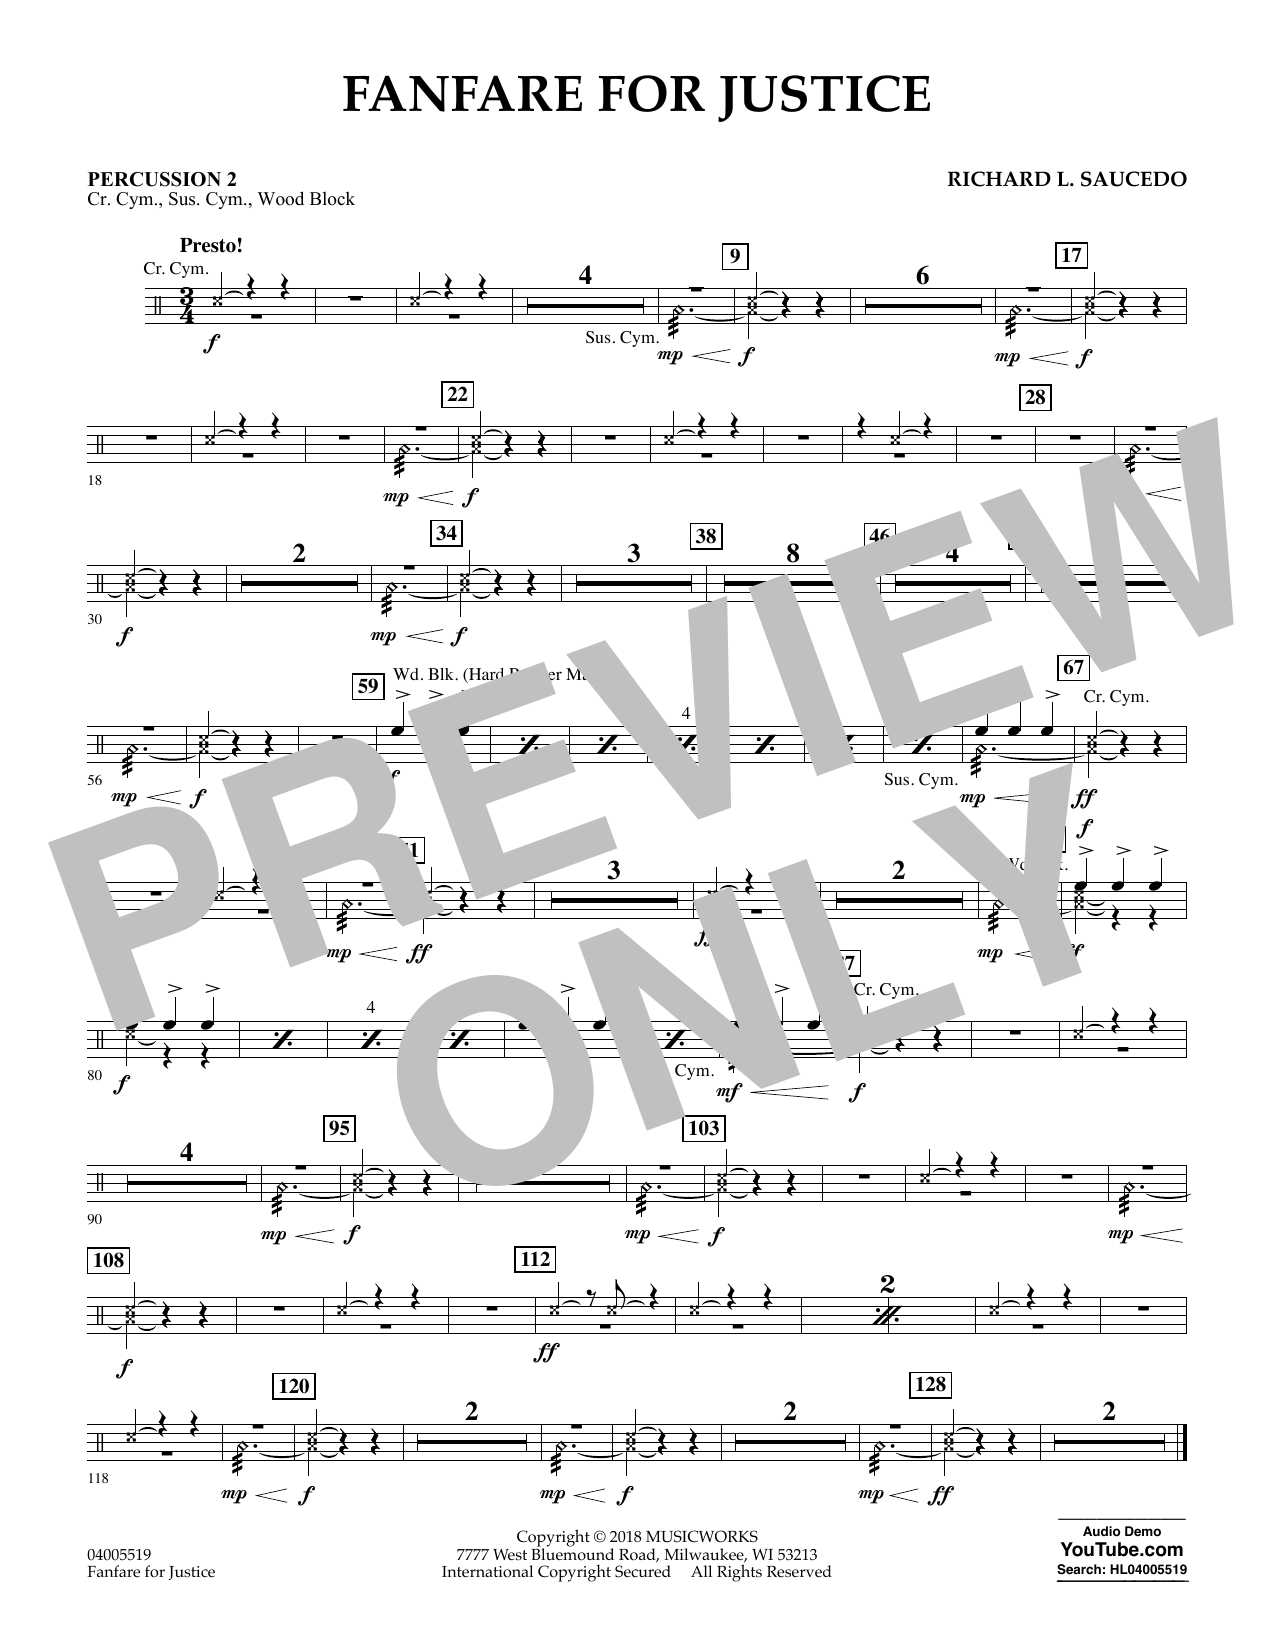 Fanfare for Justice - Percussion 2 (Concert Band)